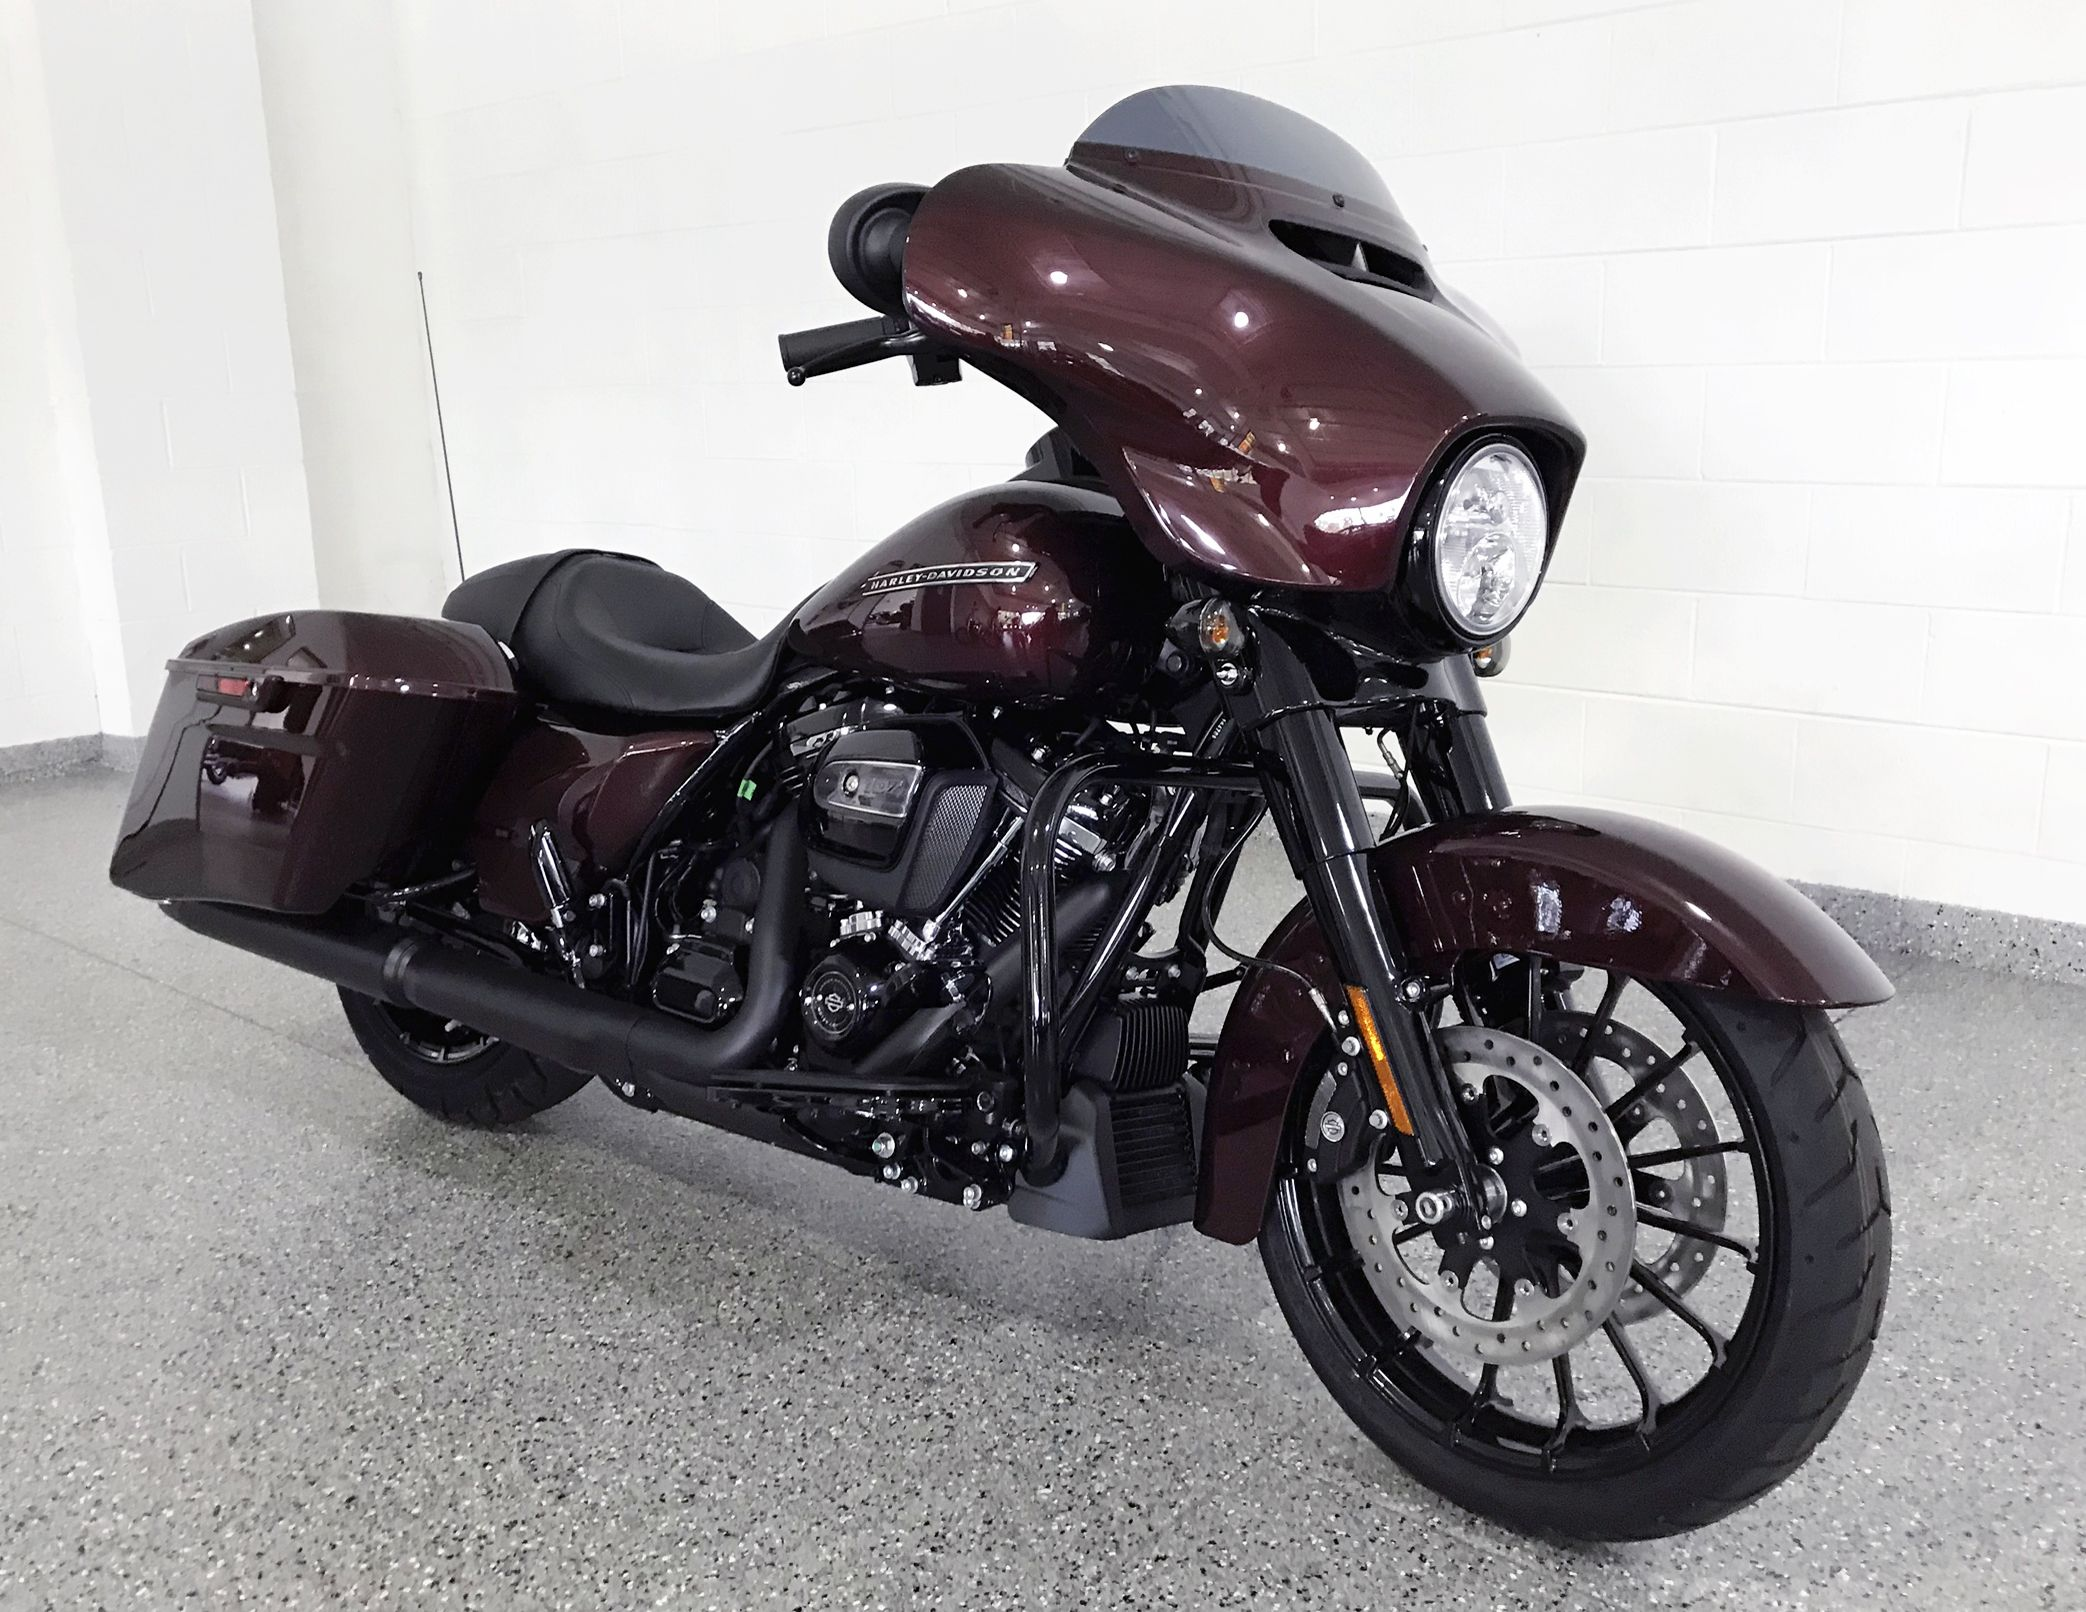 The All New 2018 Street Glide Special Looks Incredible In Twisted Cherry Harley Davidson Street Glide Special Harley Davidson Bikes